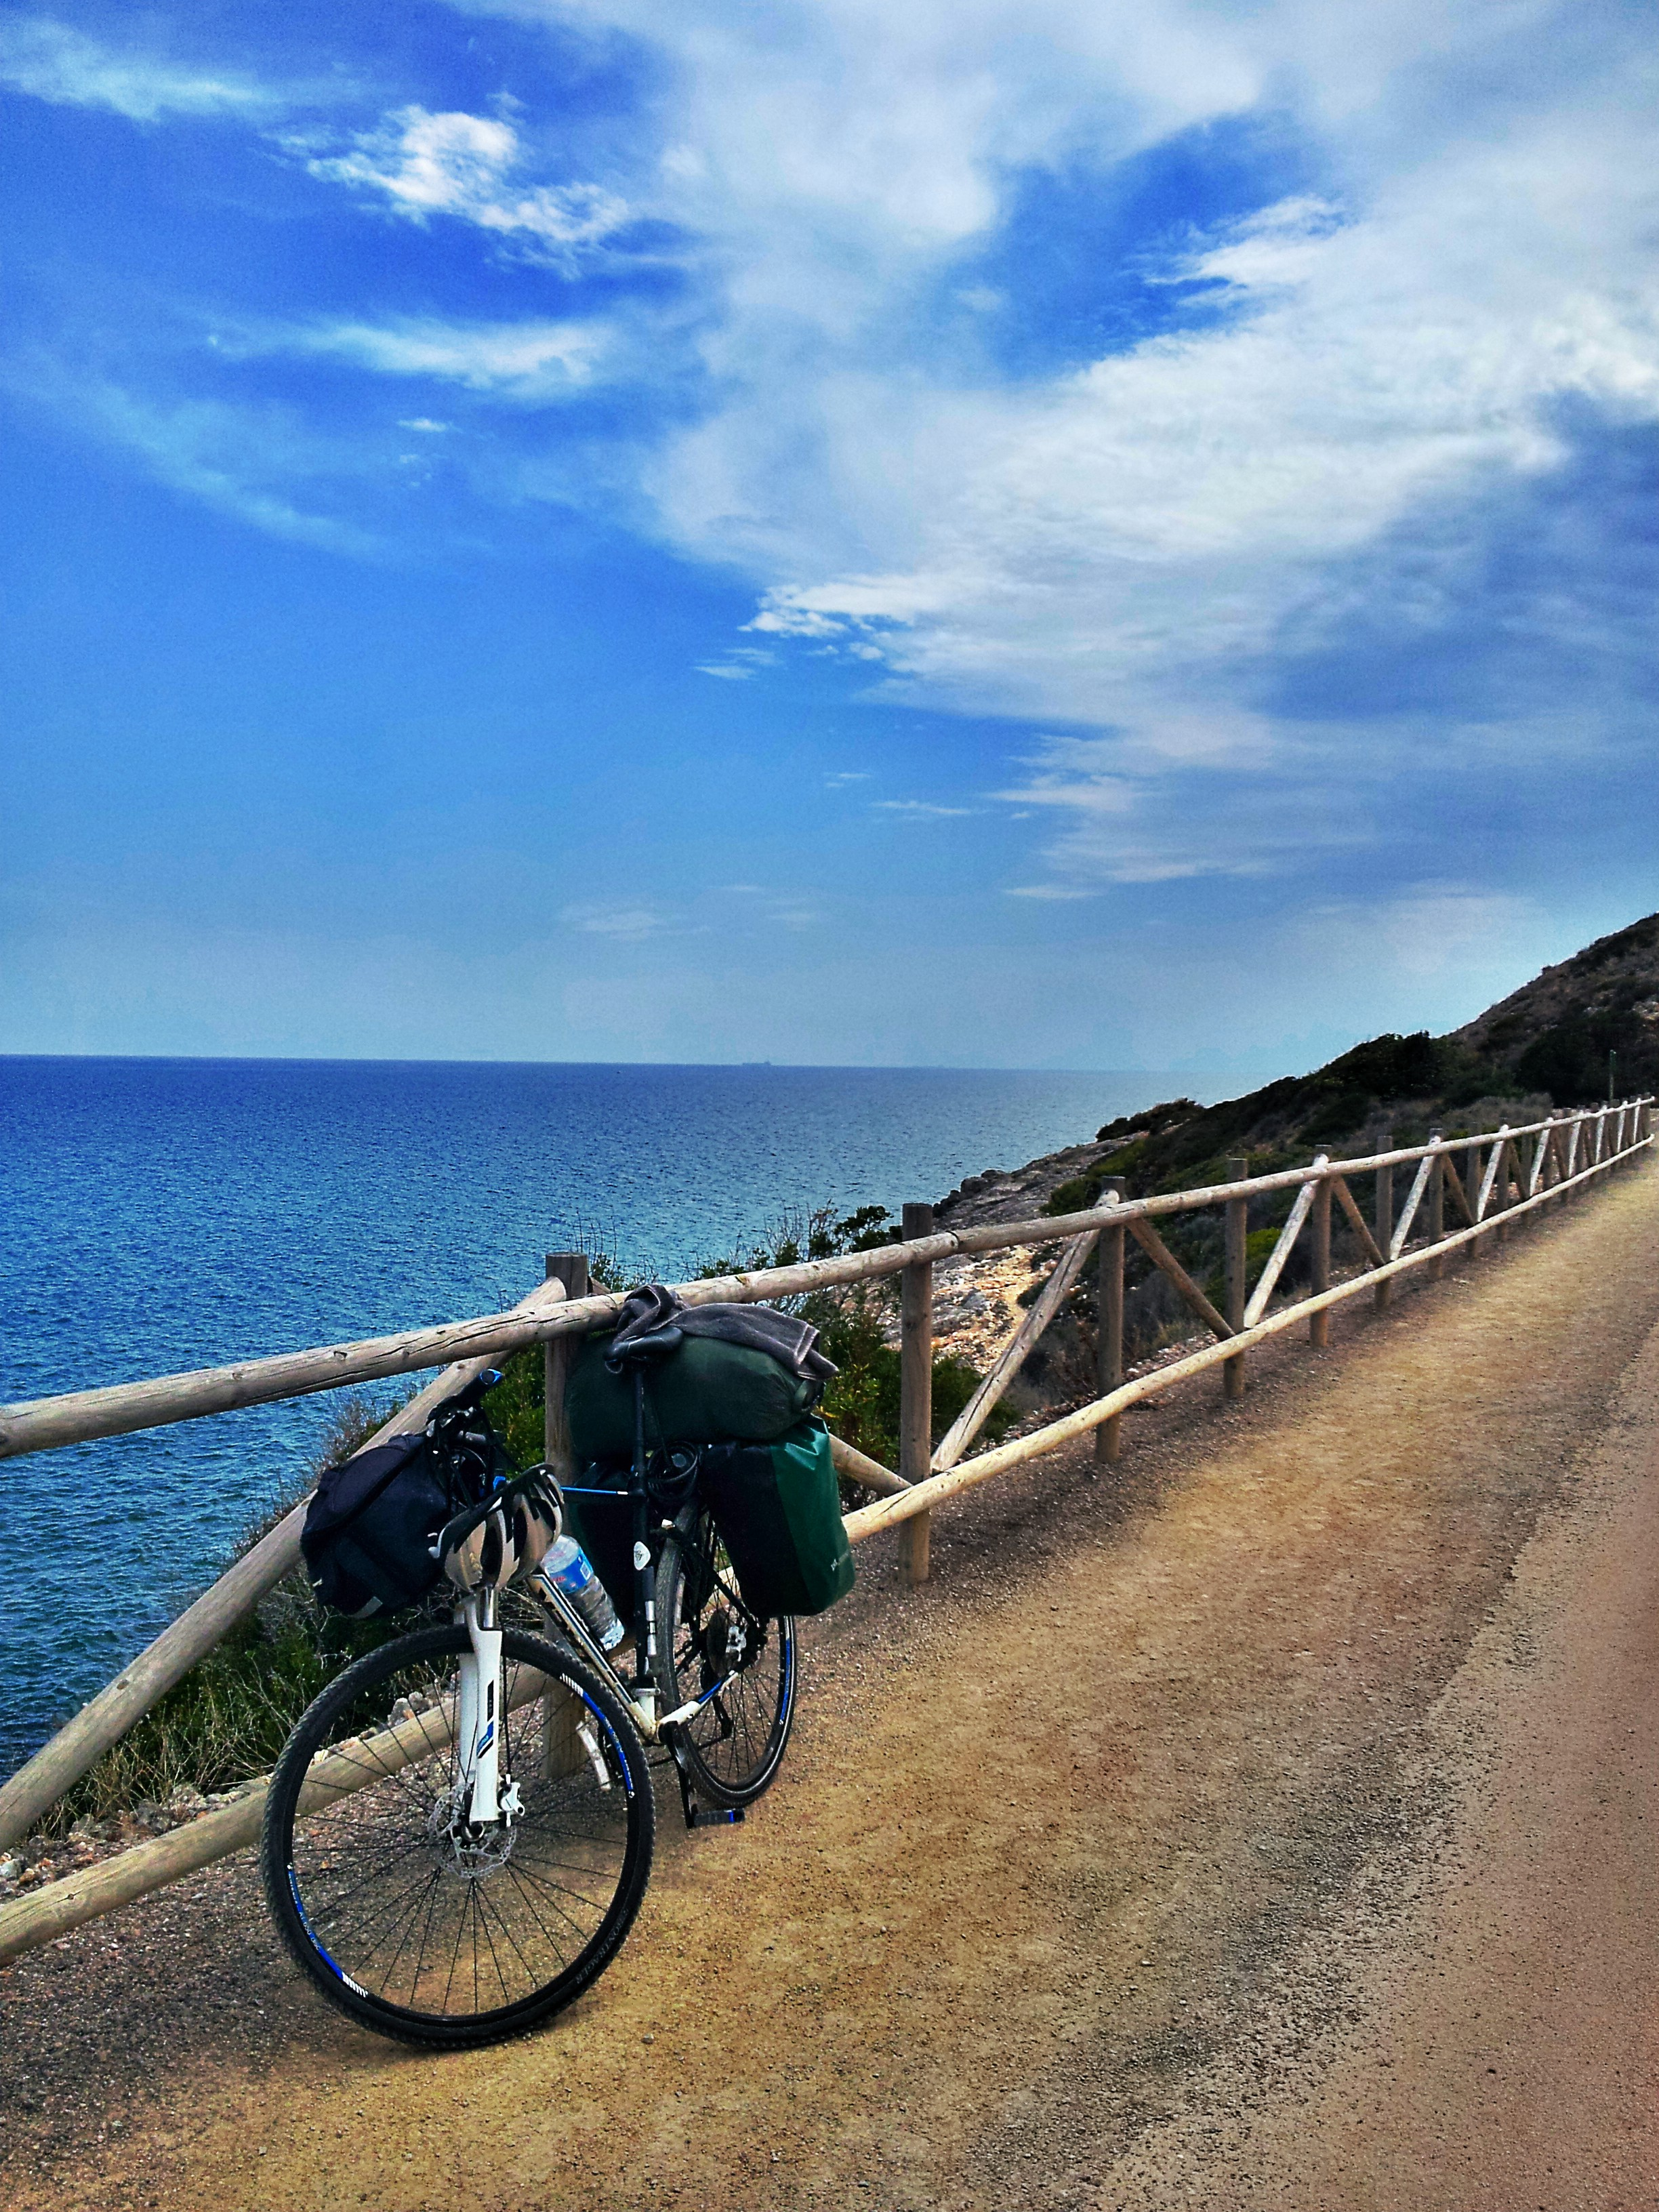 On the way from Benicassim to Oroposa, Spain